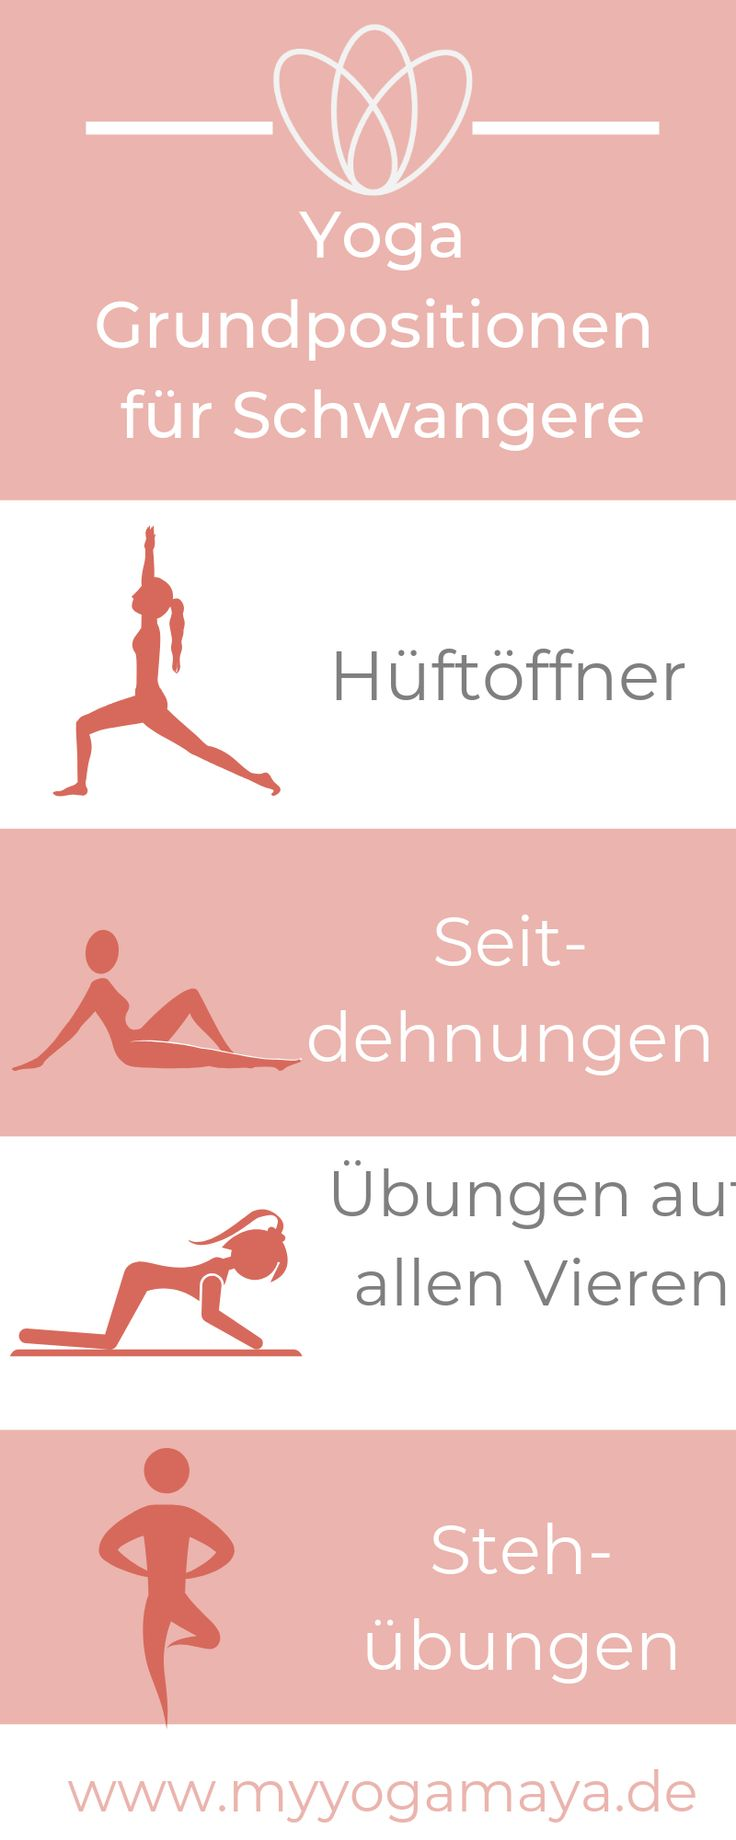 These yoga exercises are suitable for you as pregnant women